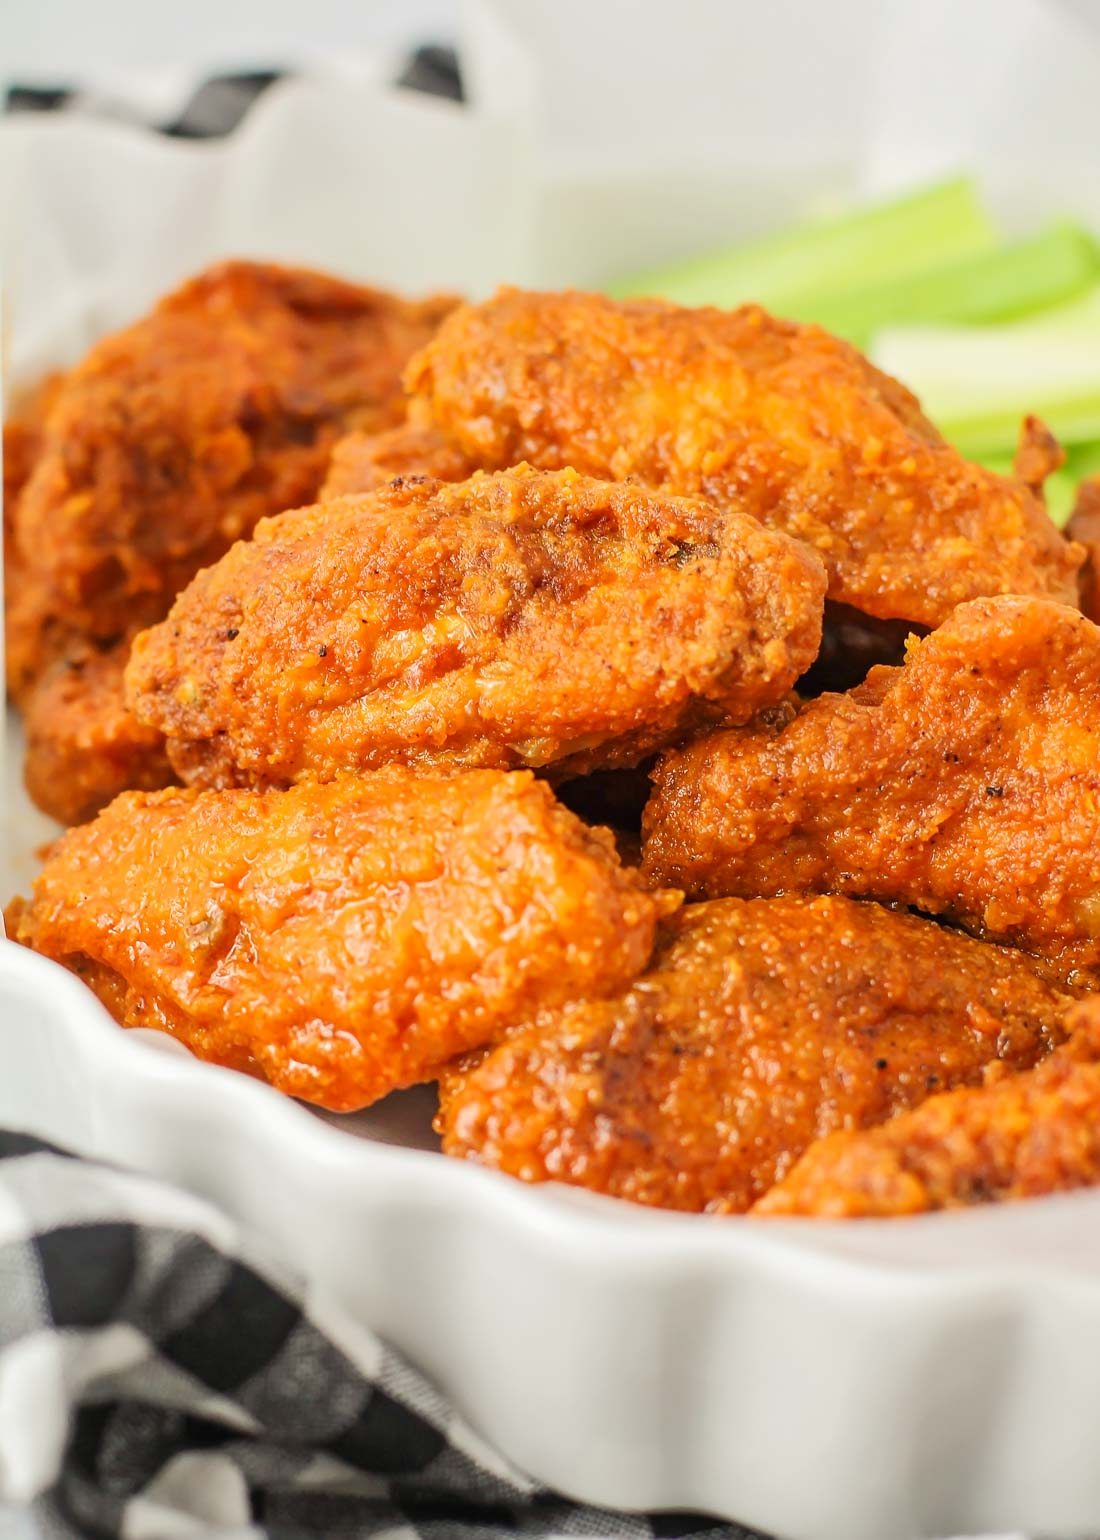 Homemade hot wings served with celery on the side